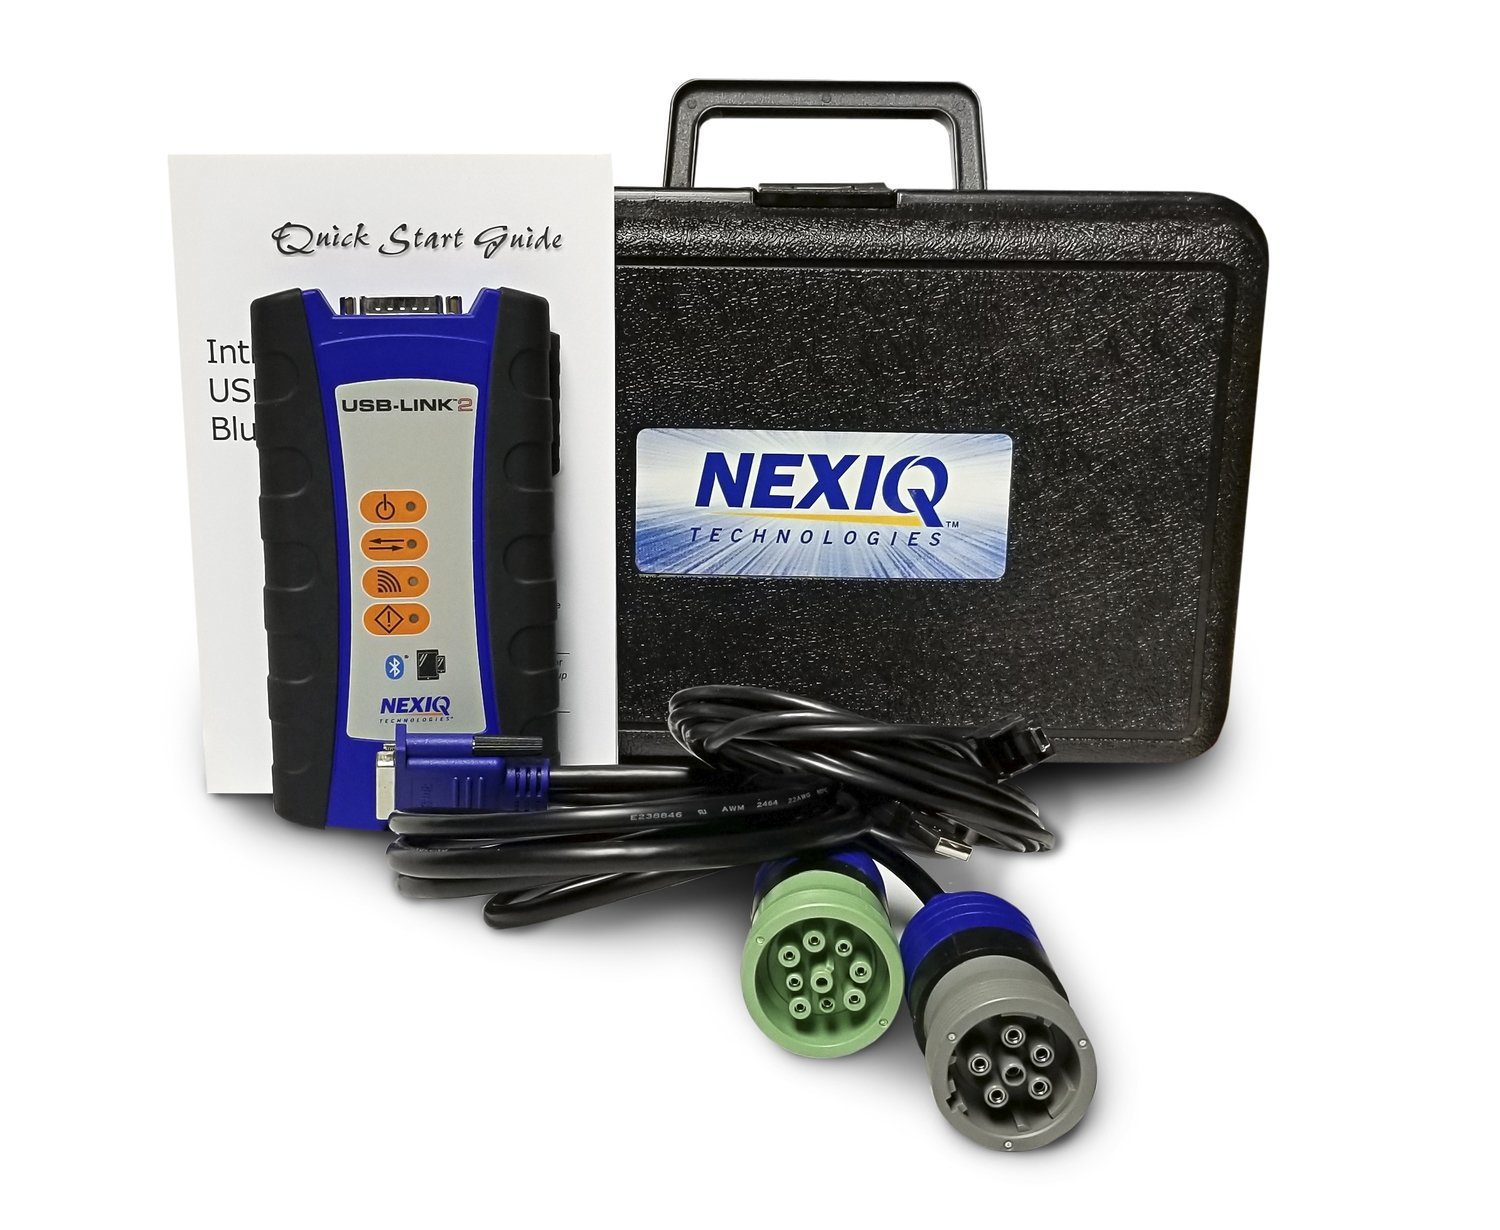 NexIQ USB-Link 2: Bluetooth Edition 000003